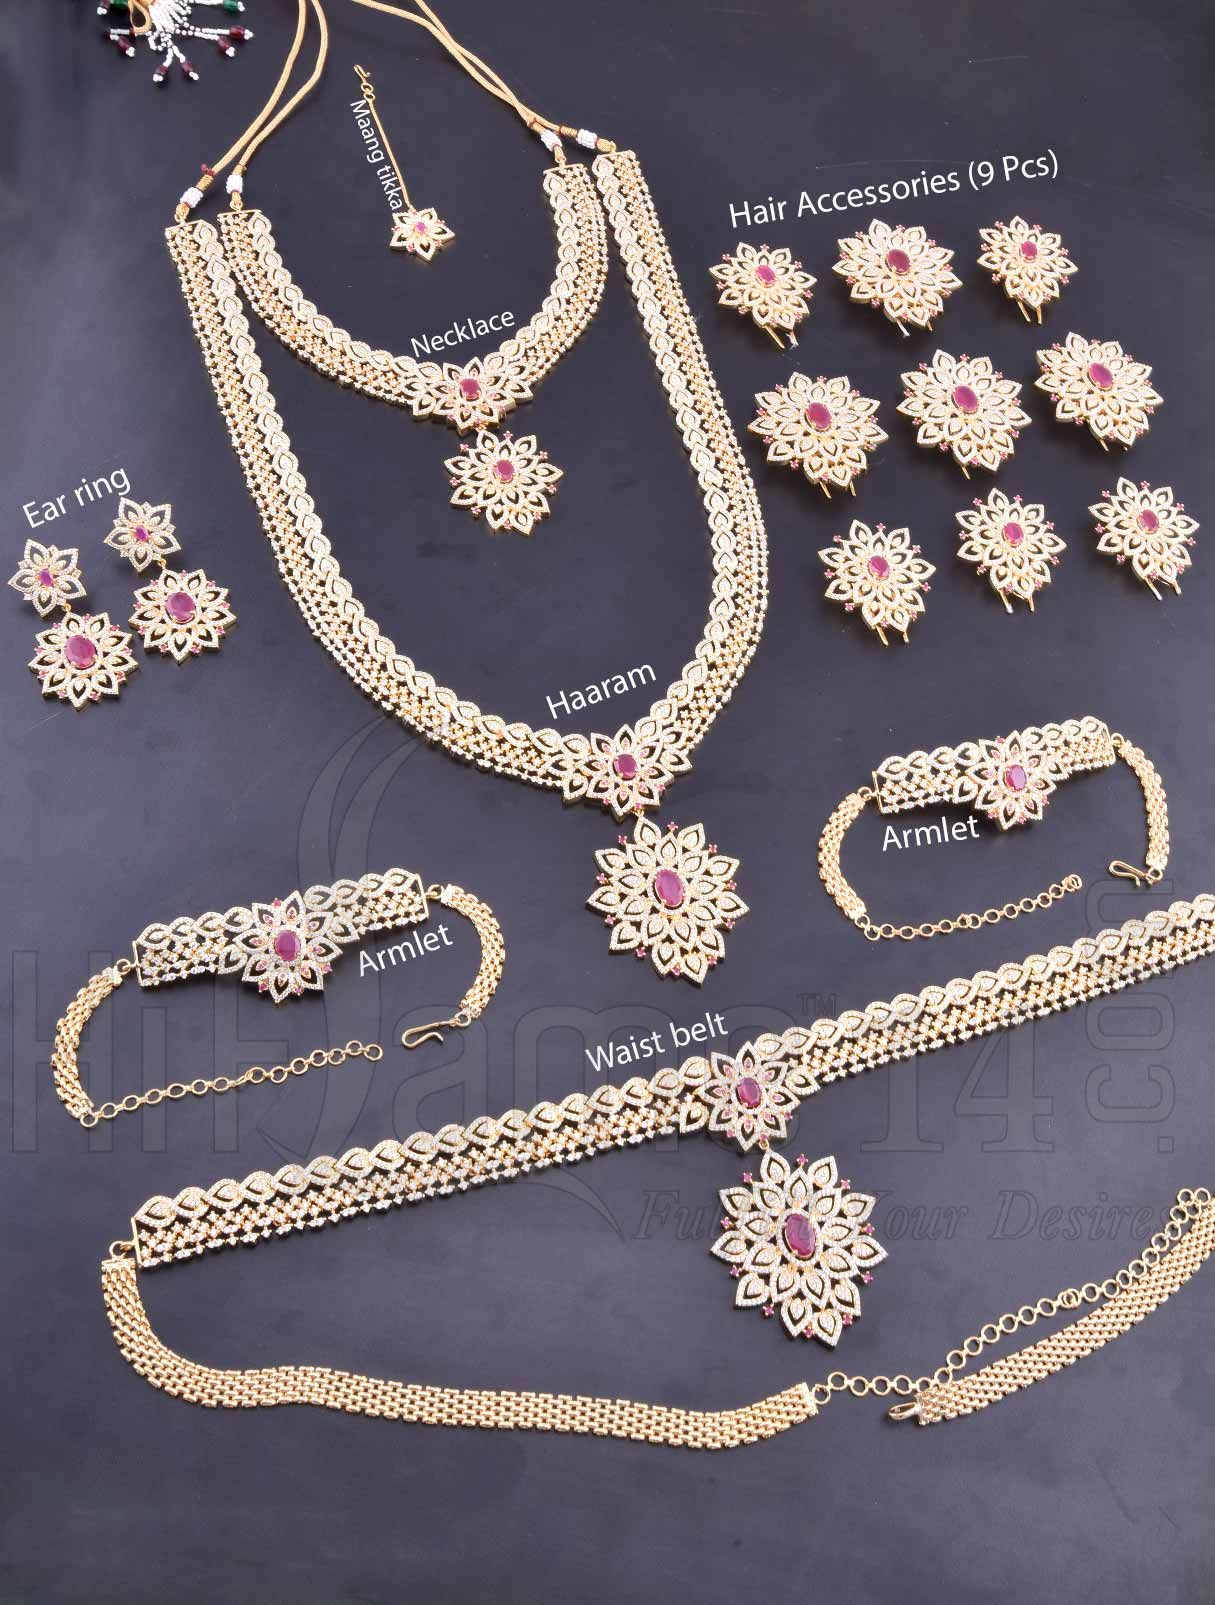 Rent Special Bridal Jewellery Sets For Wedding Occasions Bridal Jewelry Diamond Bridal Sets Wedding Jewelry Sets